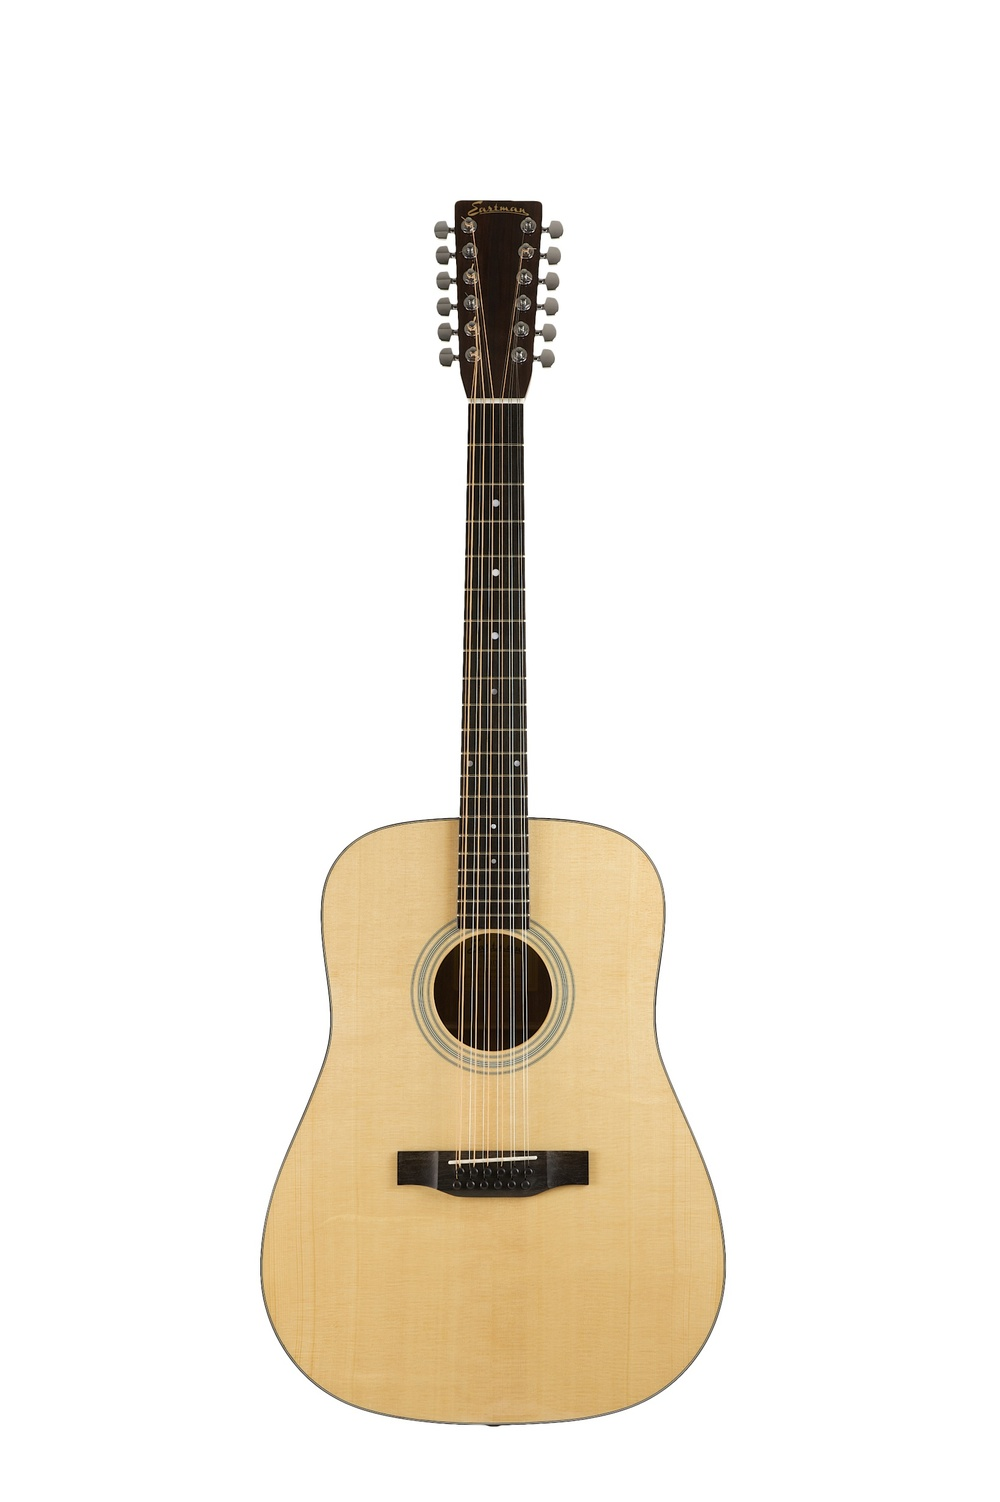 E6D-12 Suggested retail price: $1,200